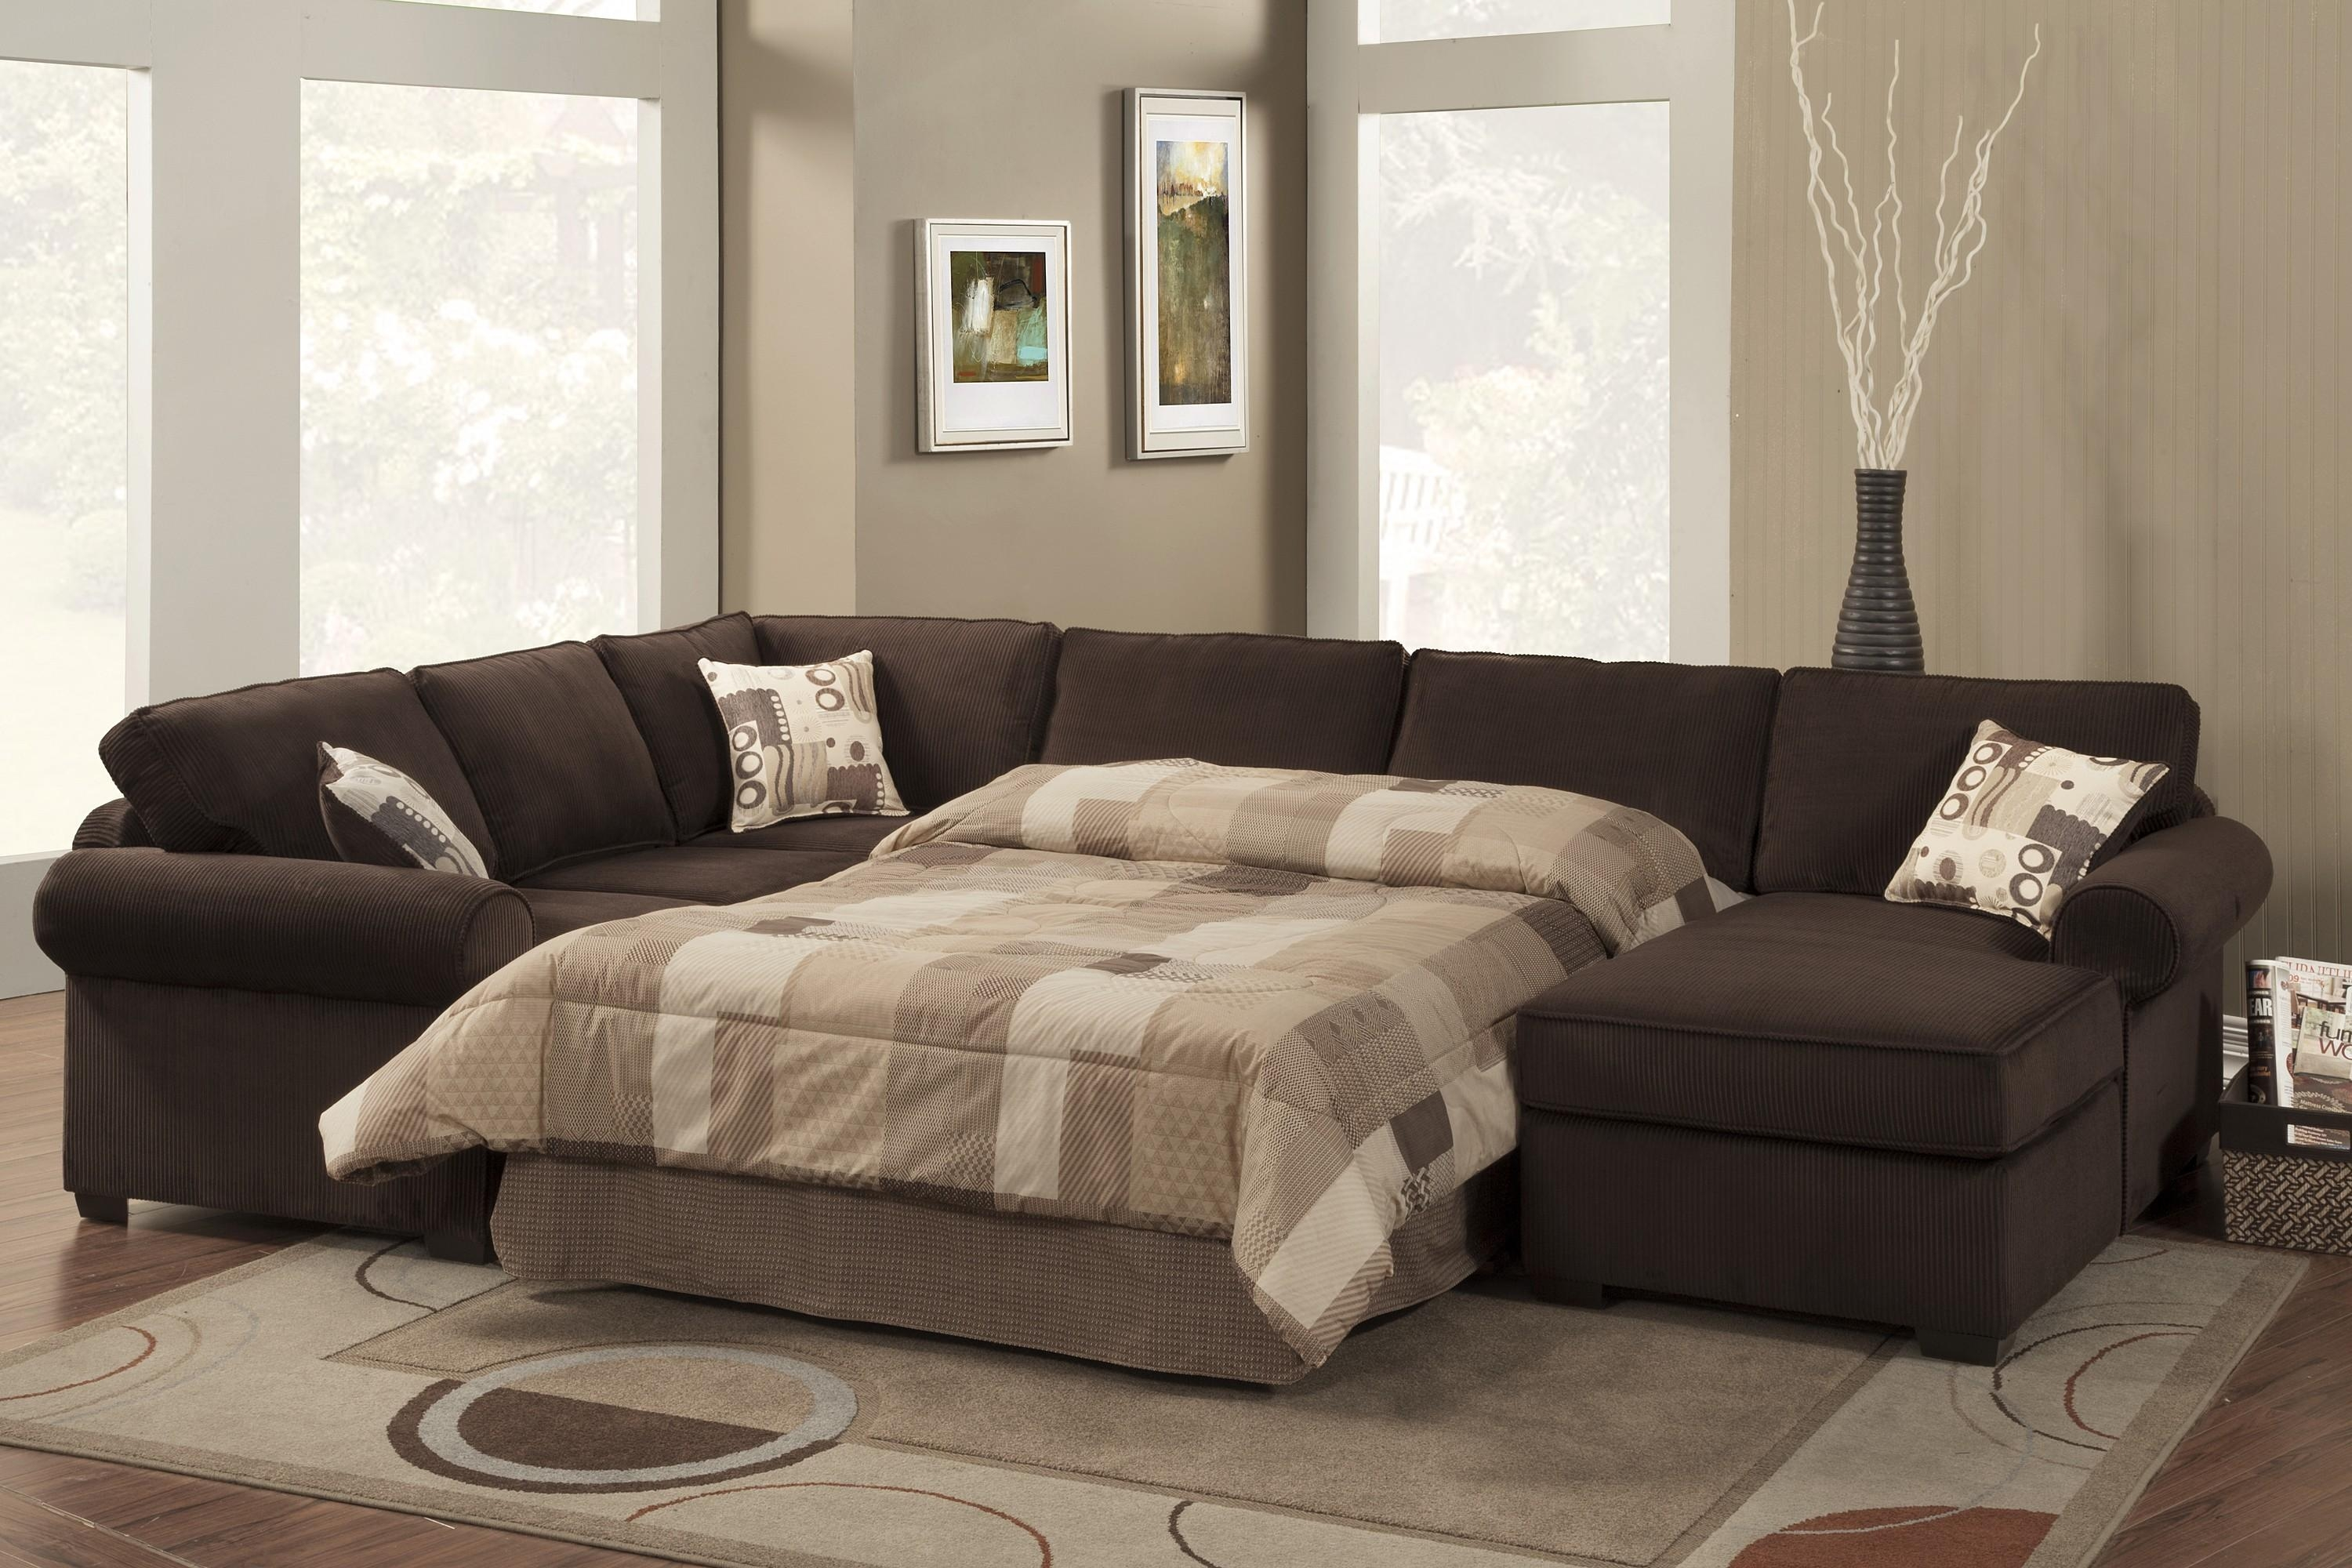 Furniture: Contemporary Sectional Sofas | Sectional Sleeper Sofa For Sectional Sofas With Sleeper And Chaise (View 11 of 21)